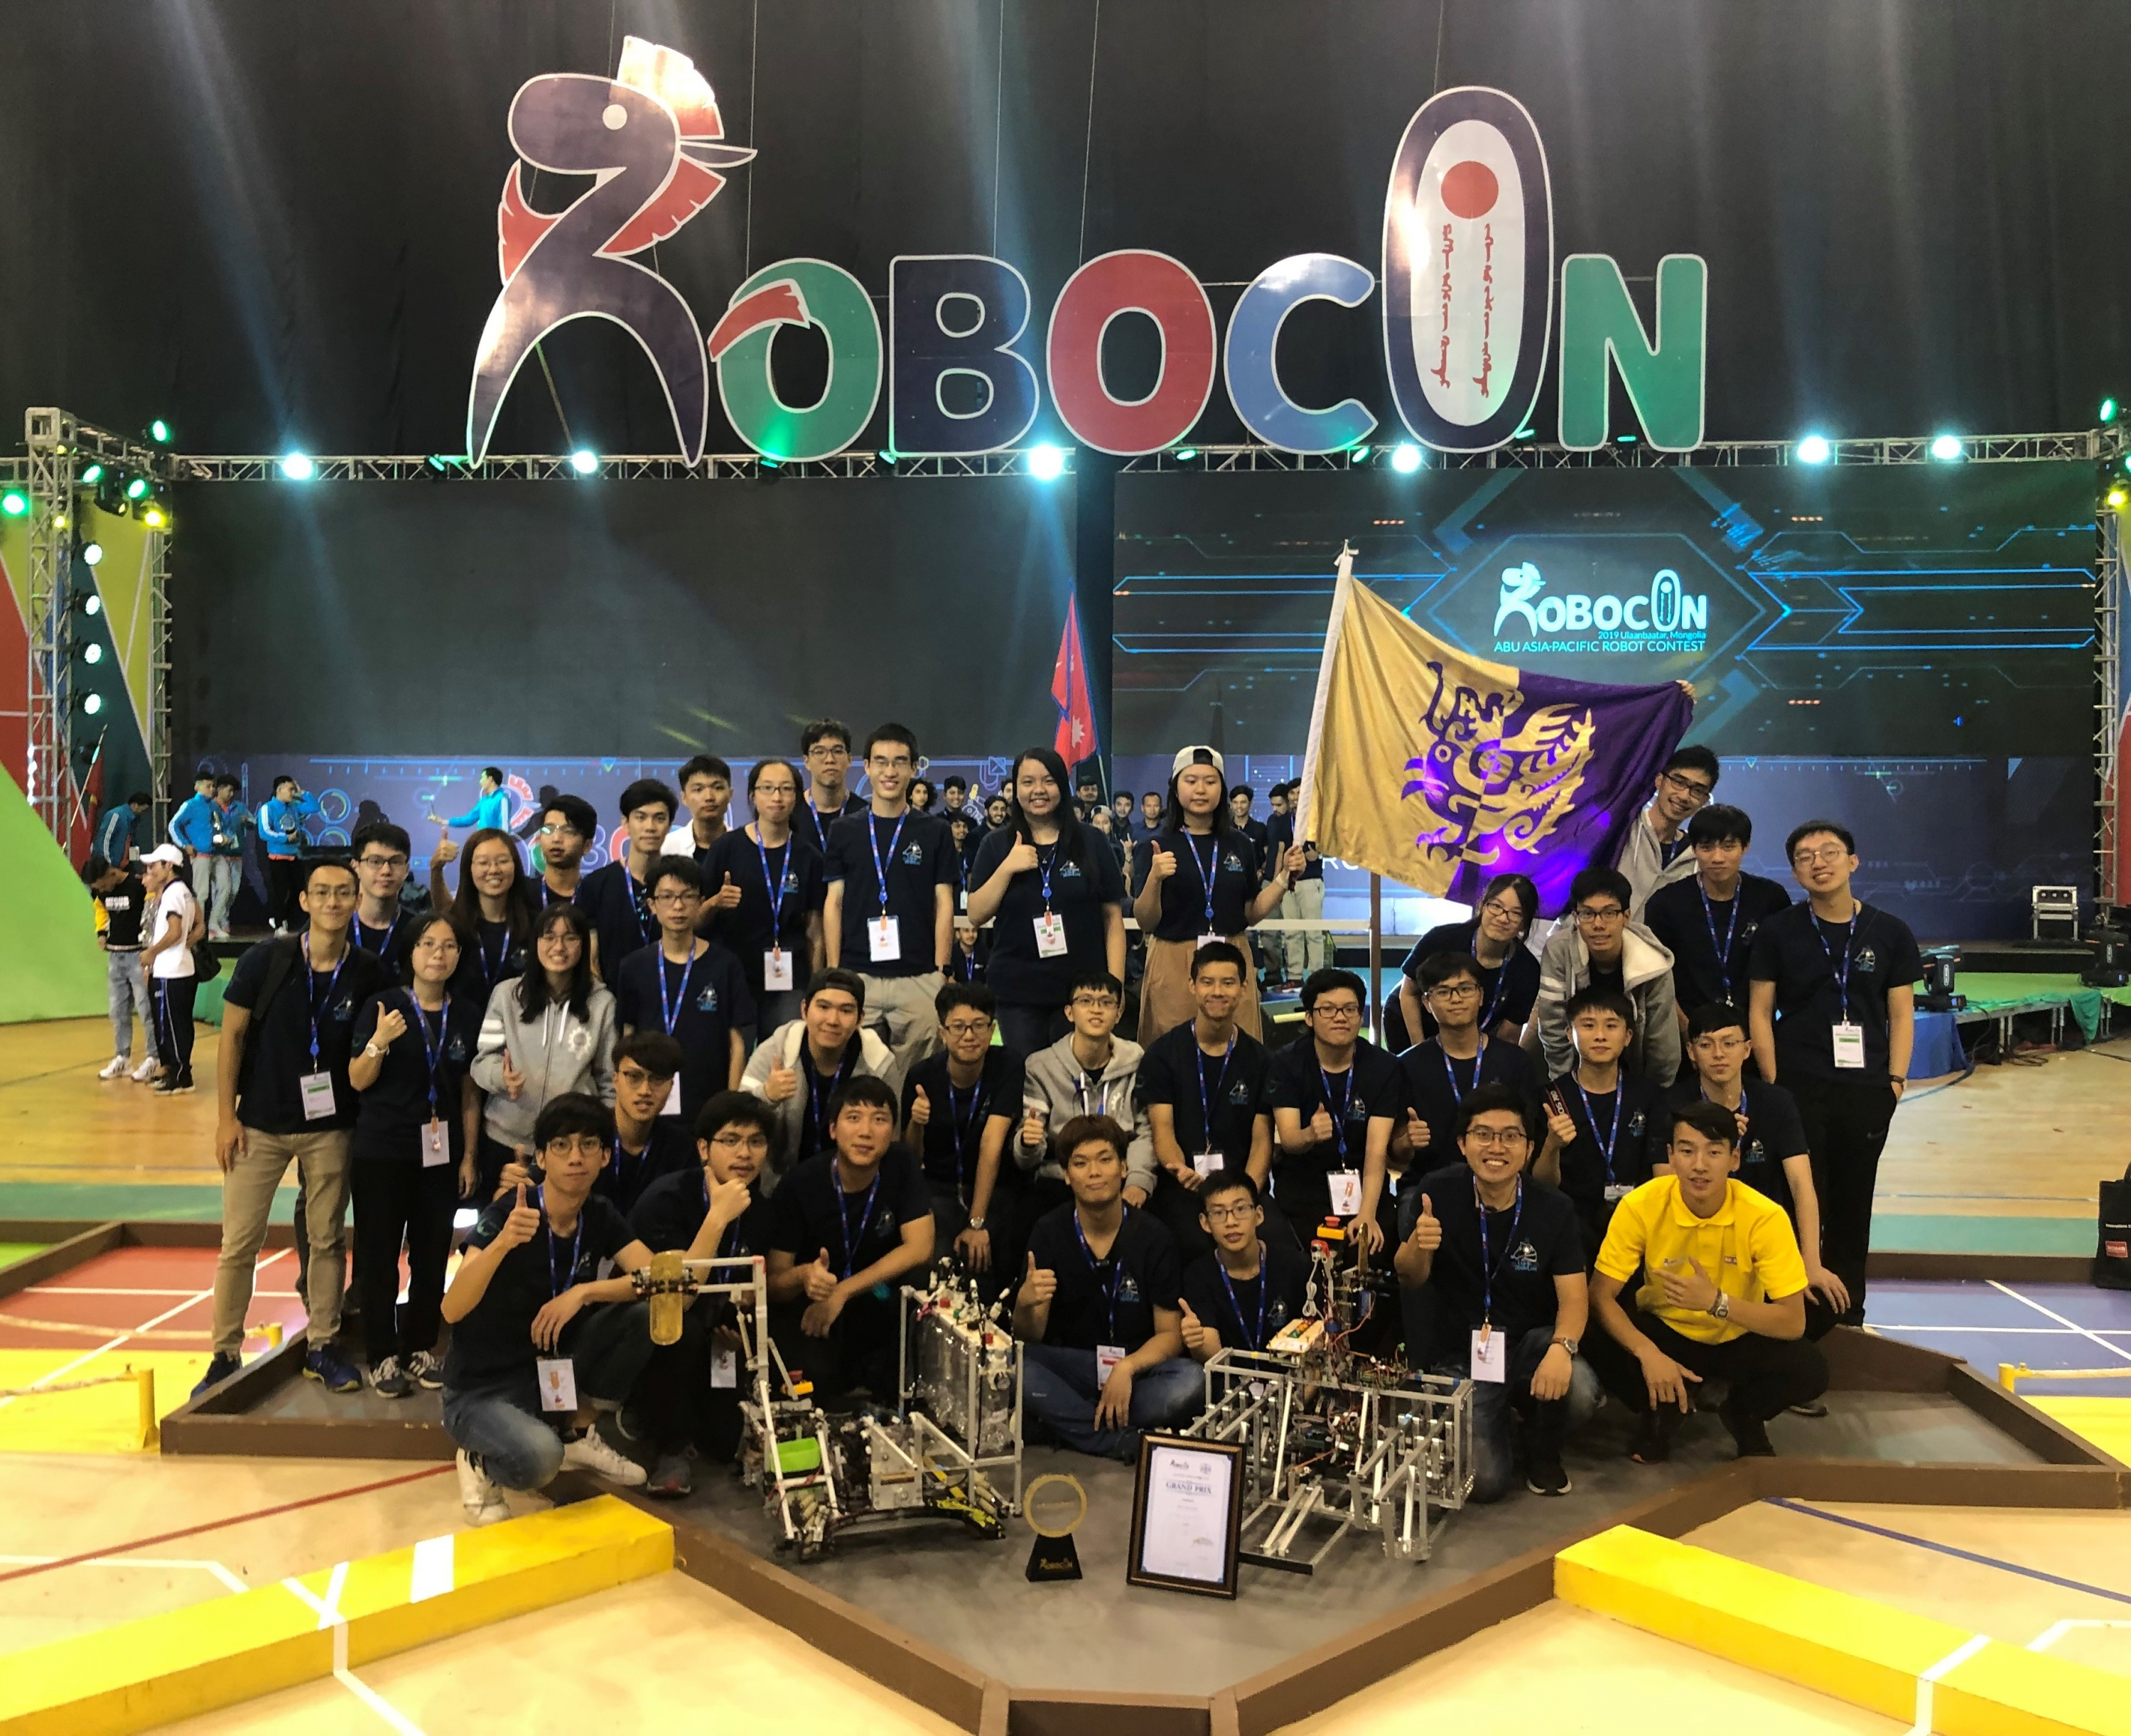 CUHK Robotic team made history by becoming the first team from Hong Kong winning the Asia-Pacific Robot Contest.